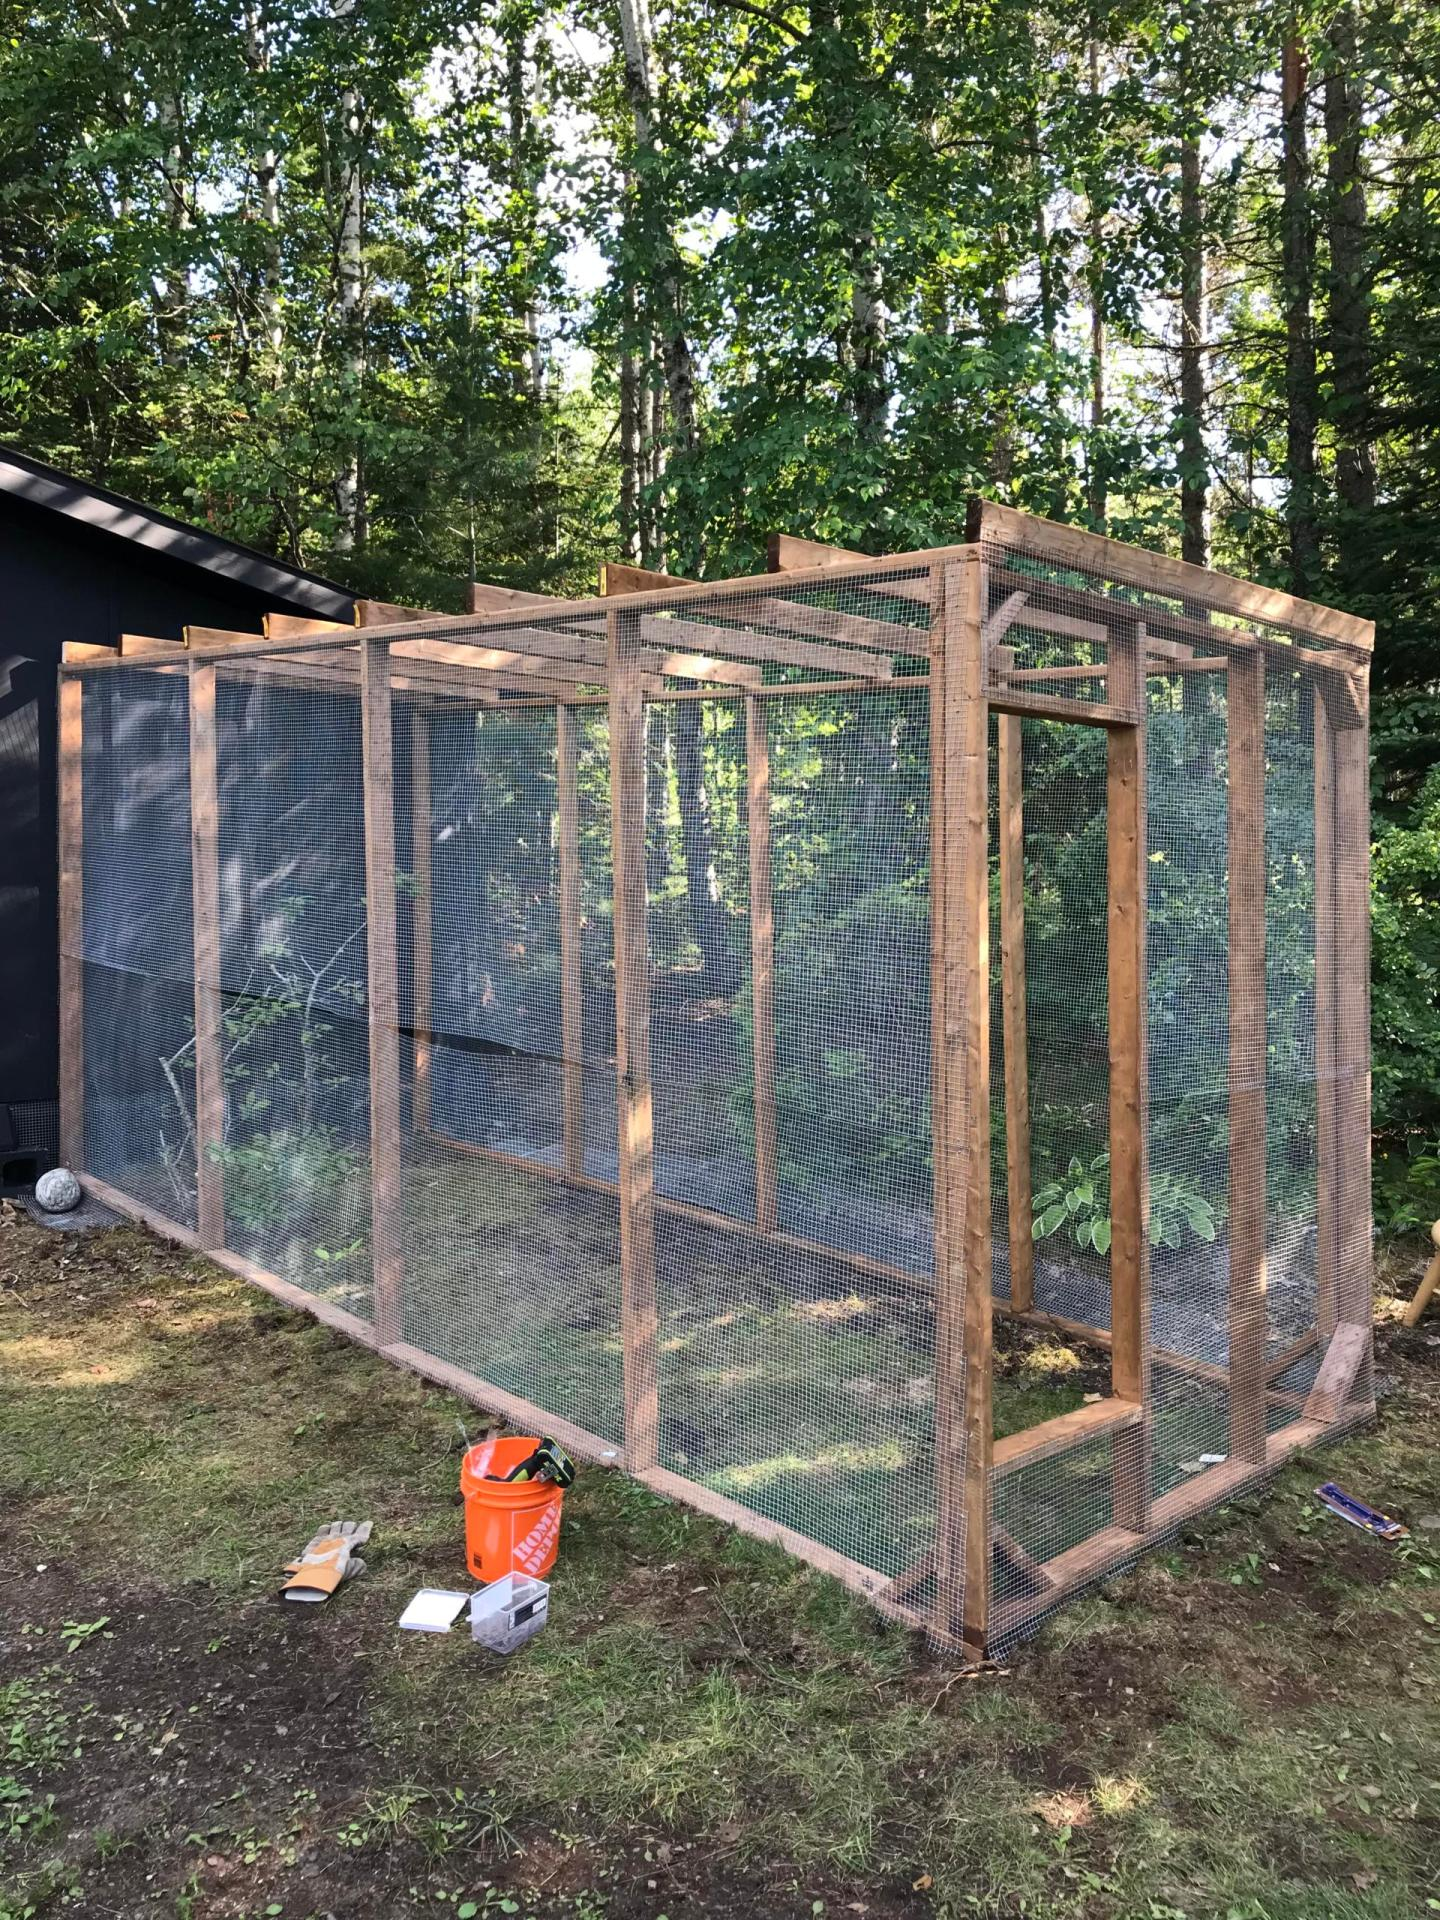 How to Install Hardware Cloth on Chicken Run